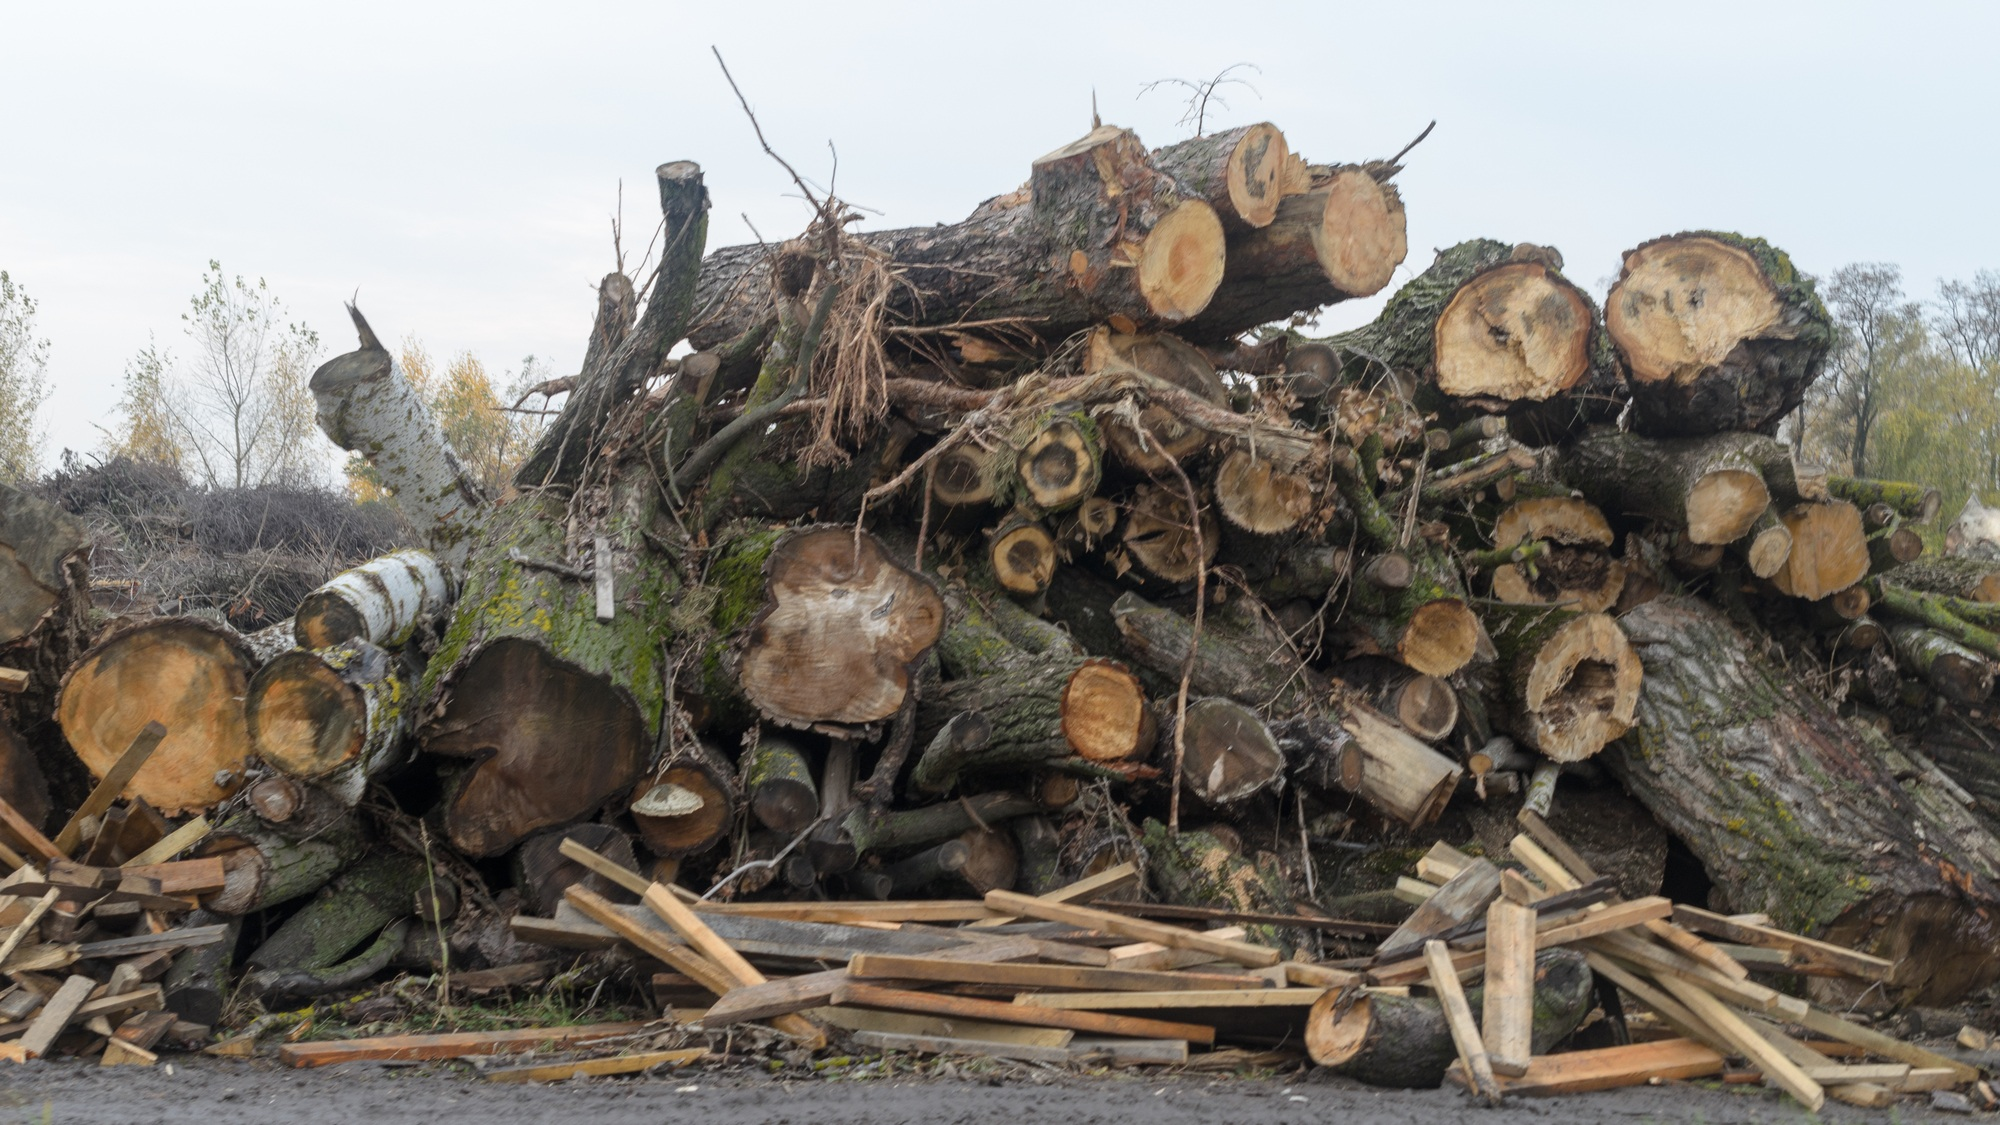 Wood waste from both logging and urban forests can be pelletized and used as thermal fuel and biochar feedstock.